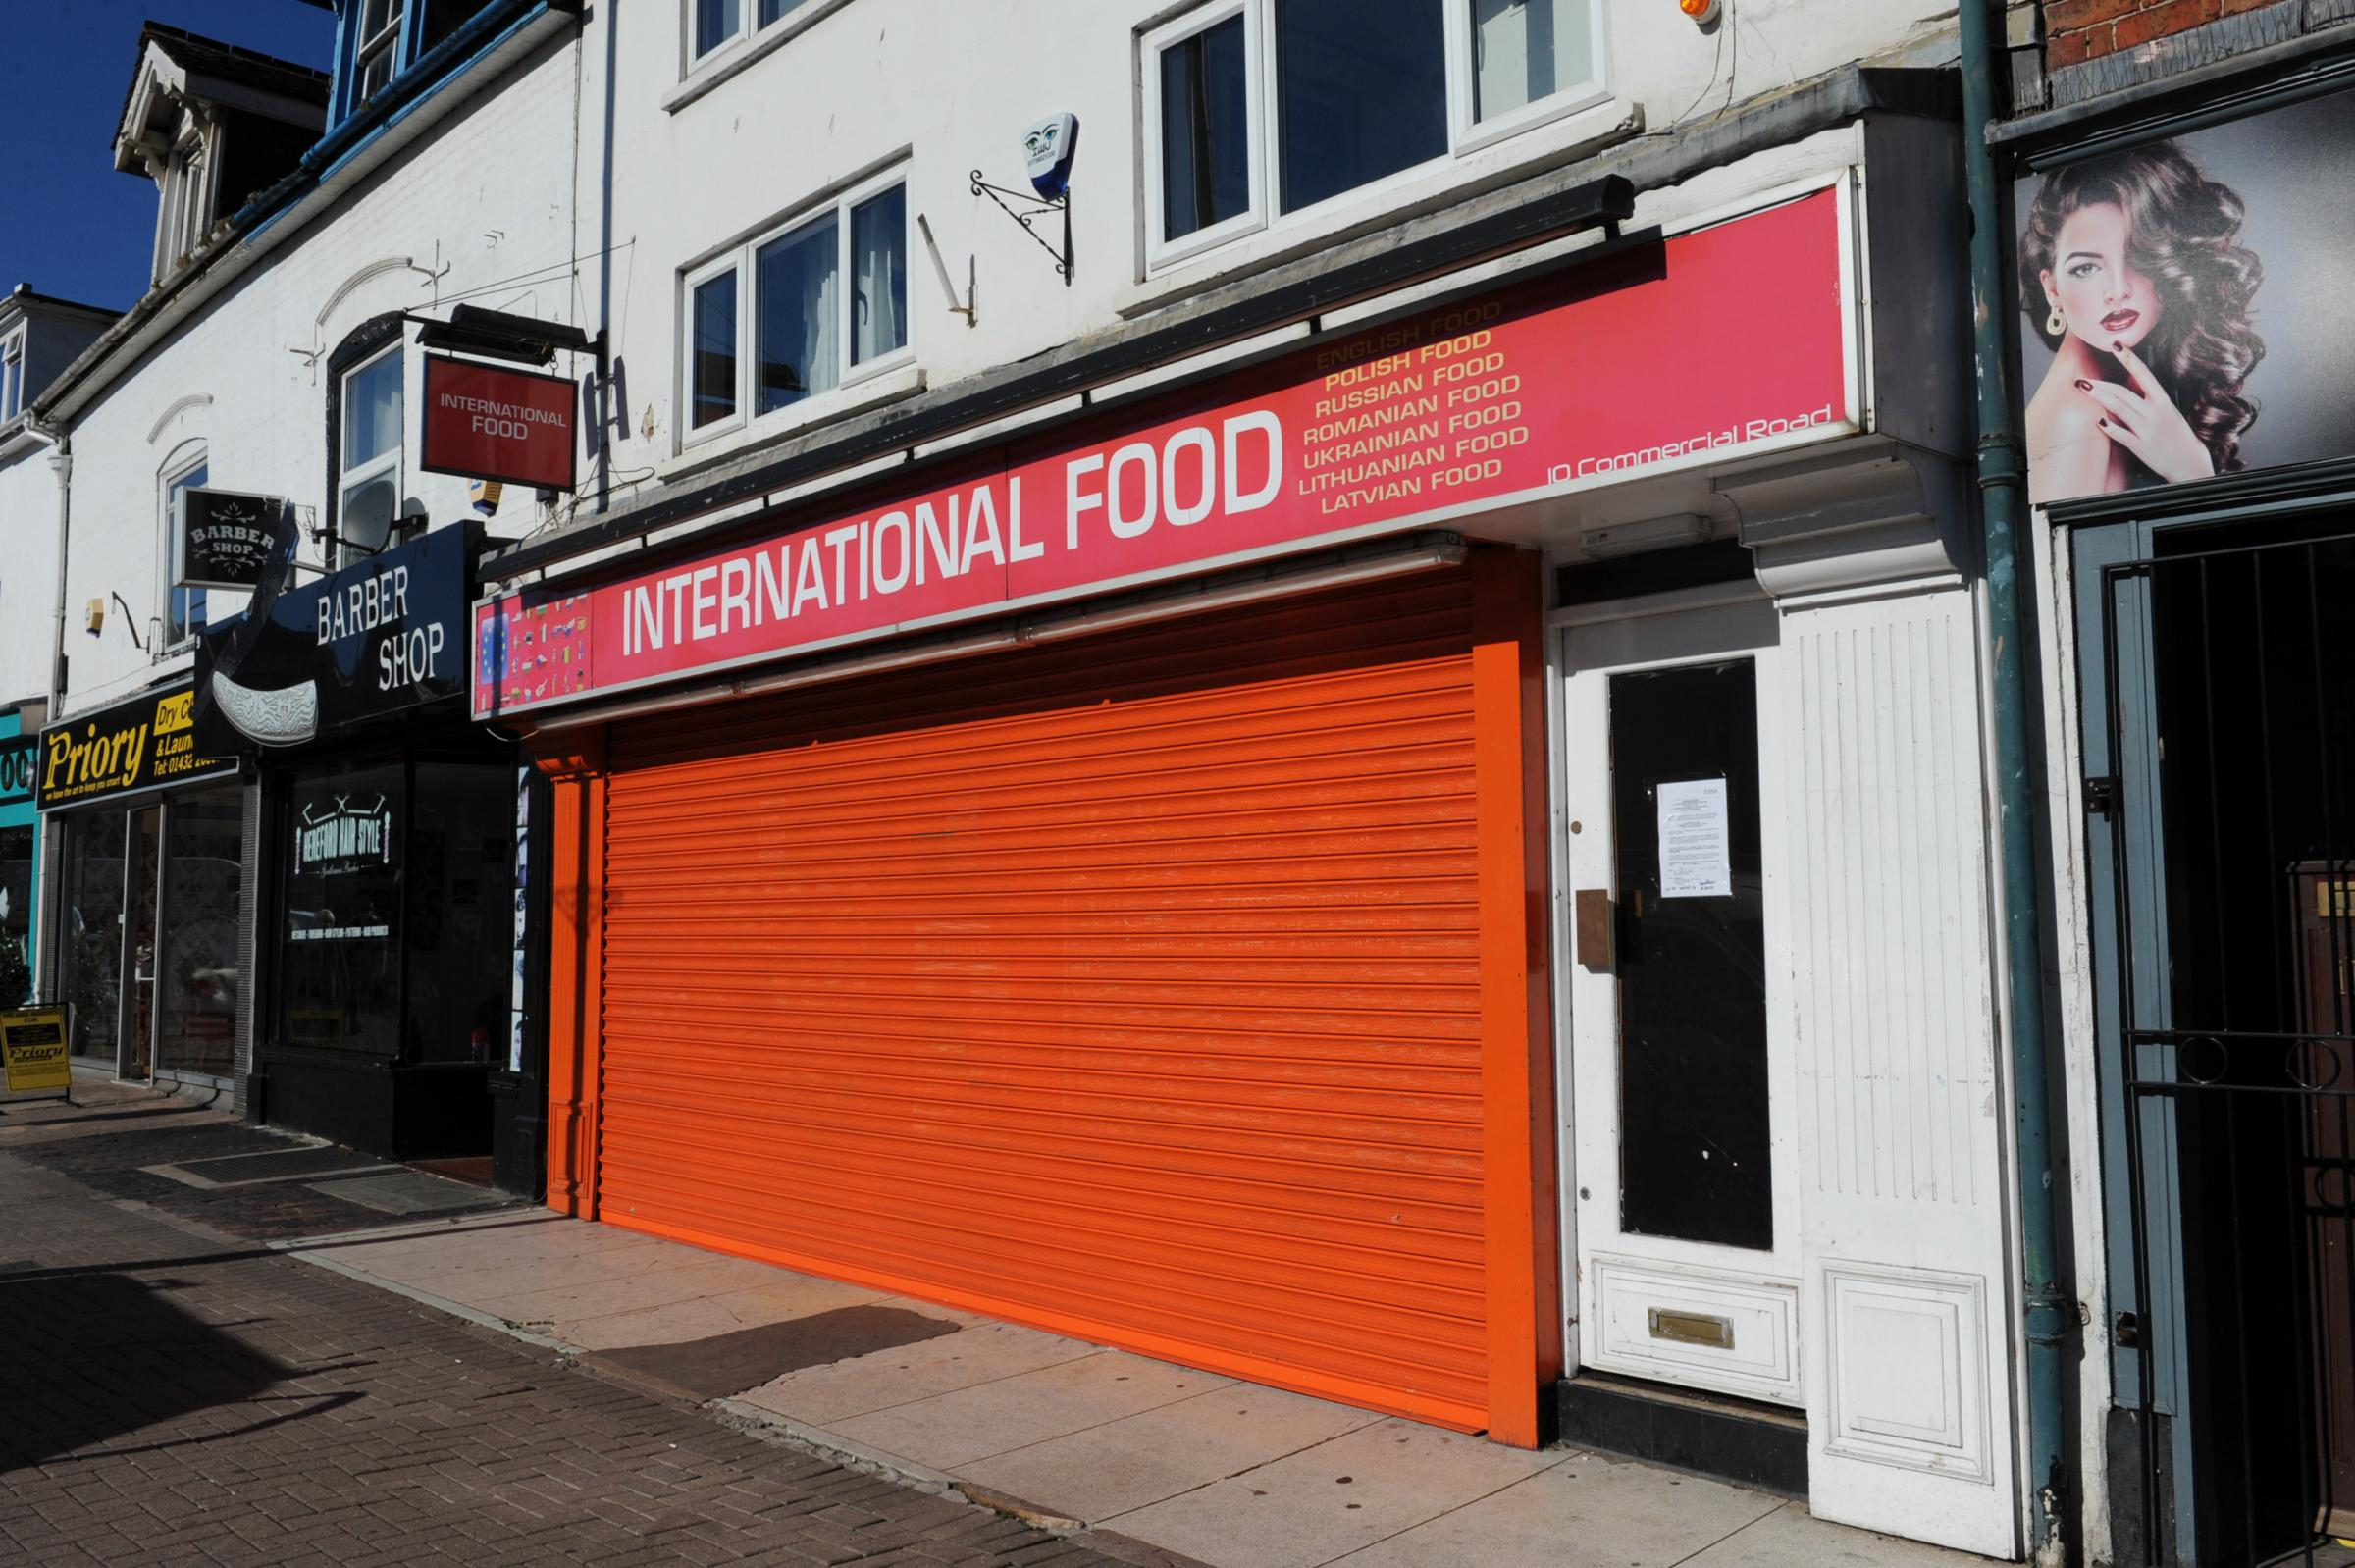 International Food shop on Commercial Road, Hereford.